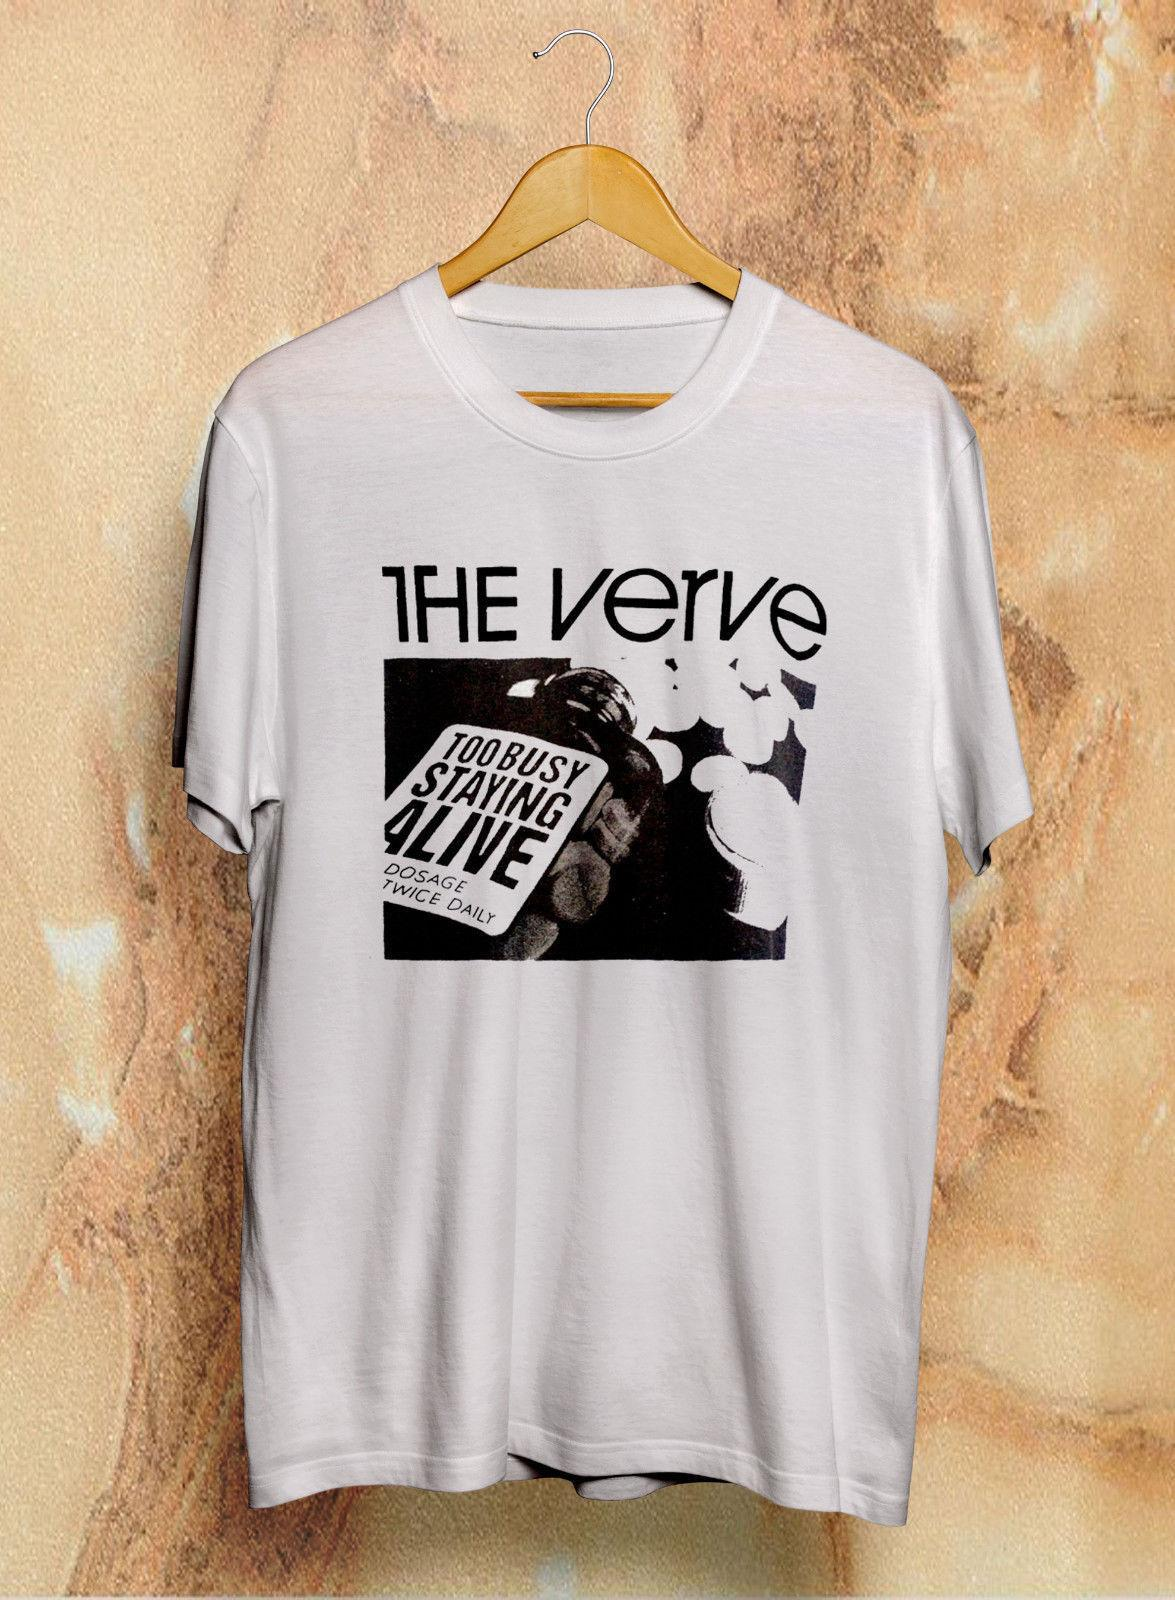 367fe19f170 New Vintage The Verve Too busy staying alive T Shirt 90s Rare Reprint S -  XXL Brand shirts jeans Print